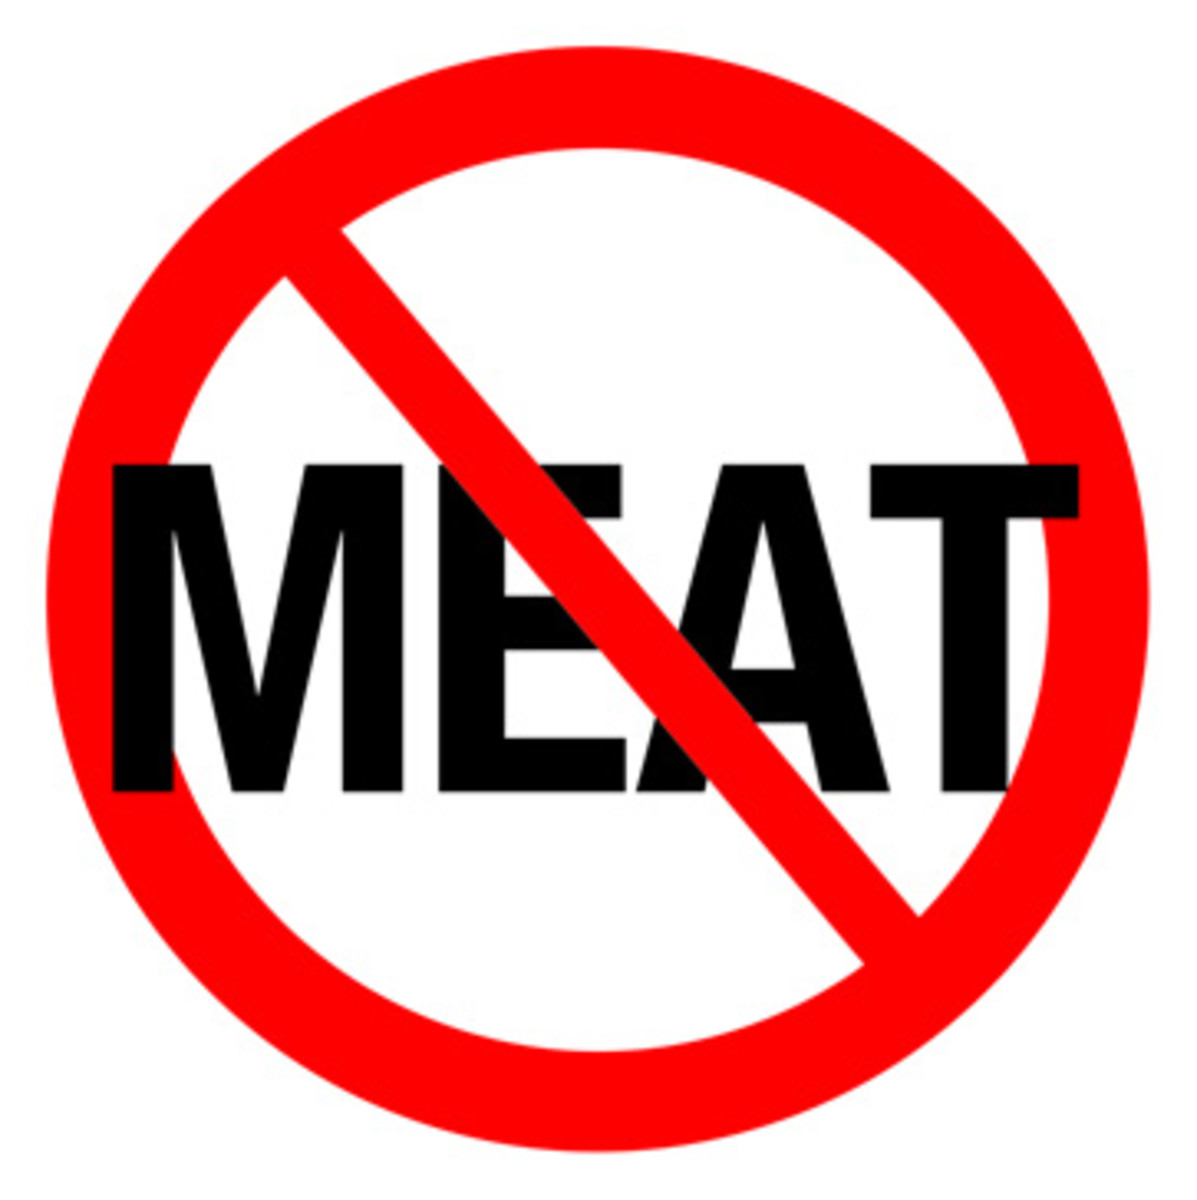 NO MEAT DIET